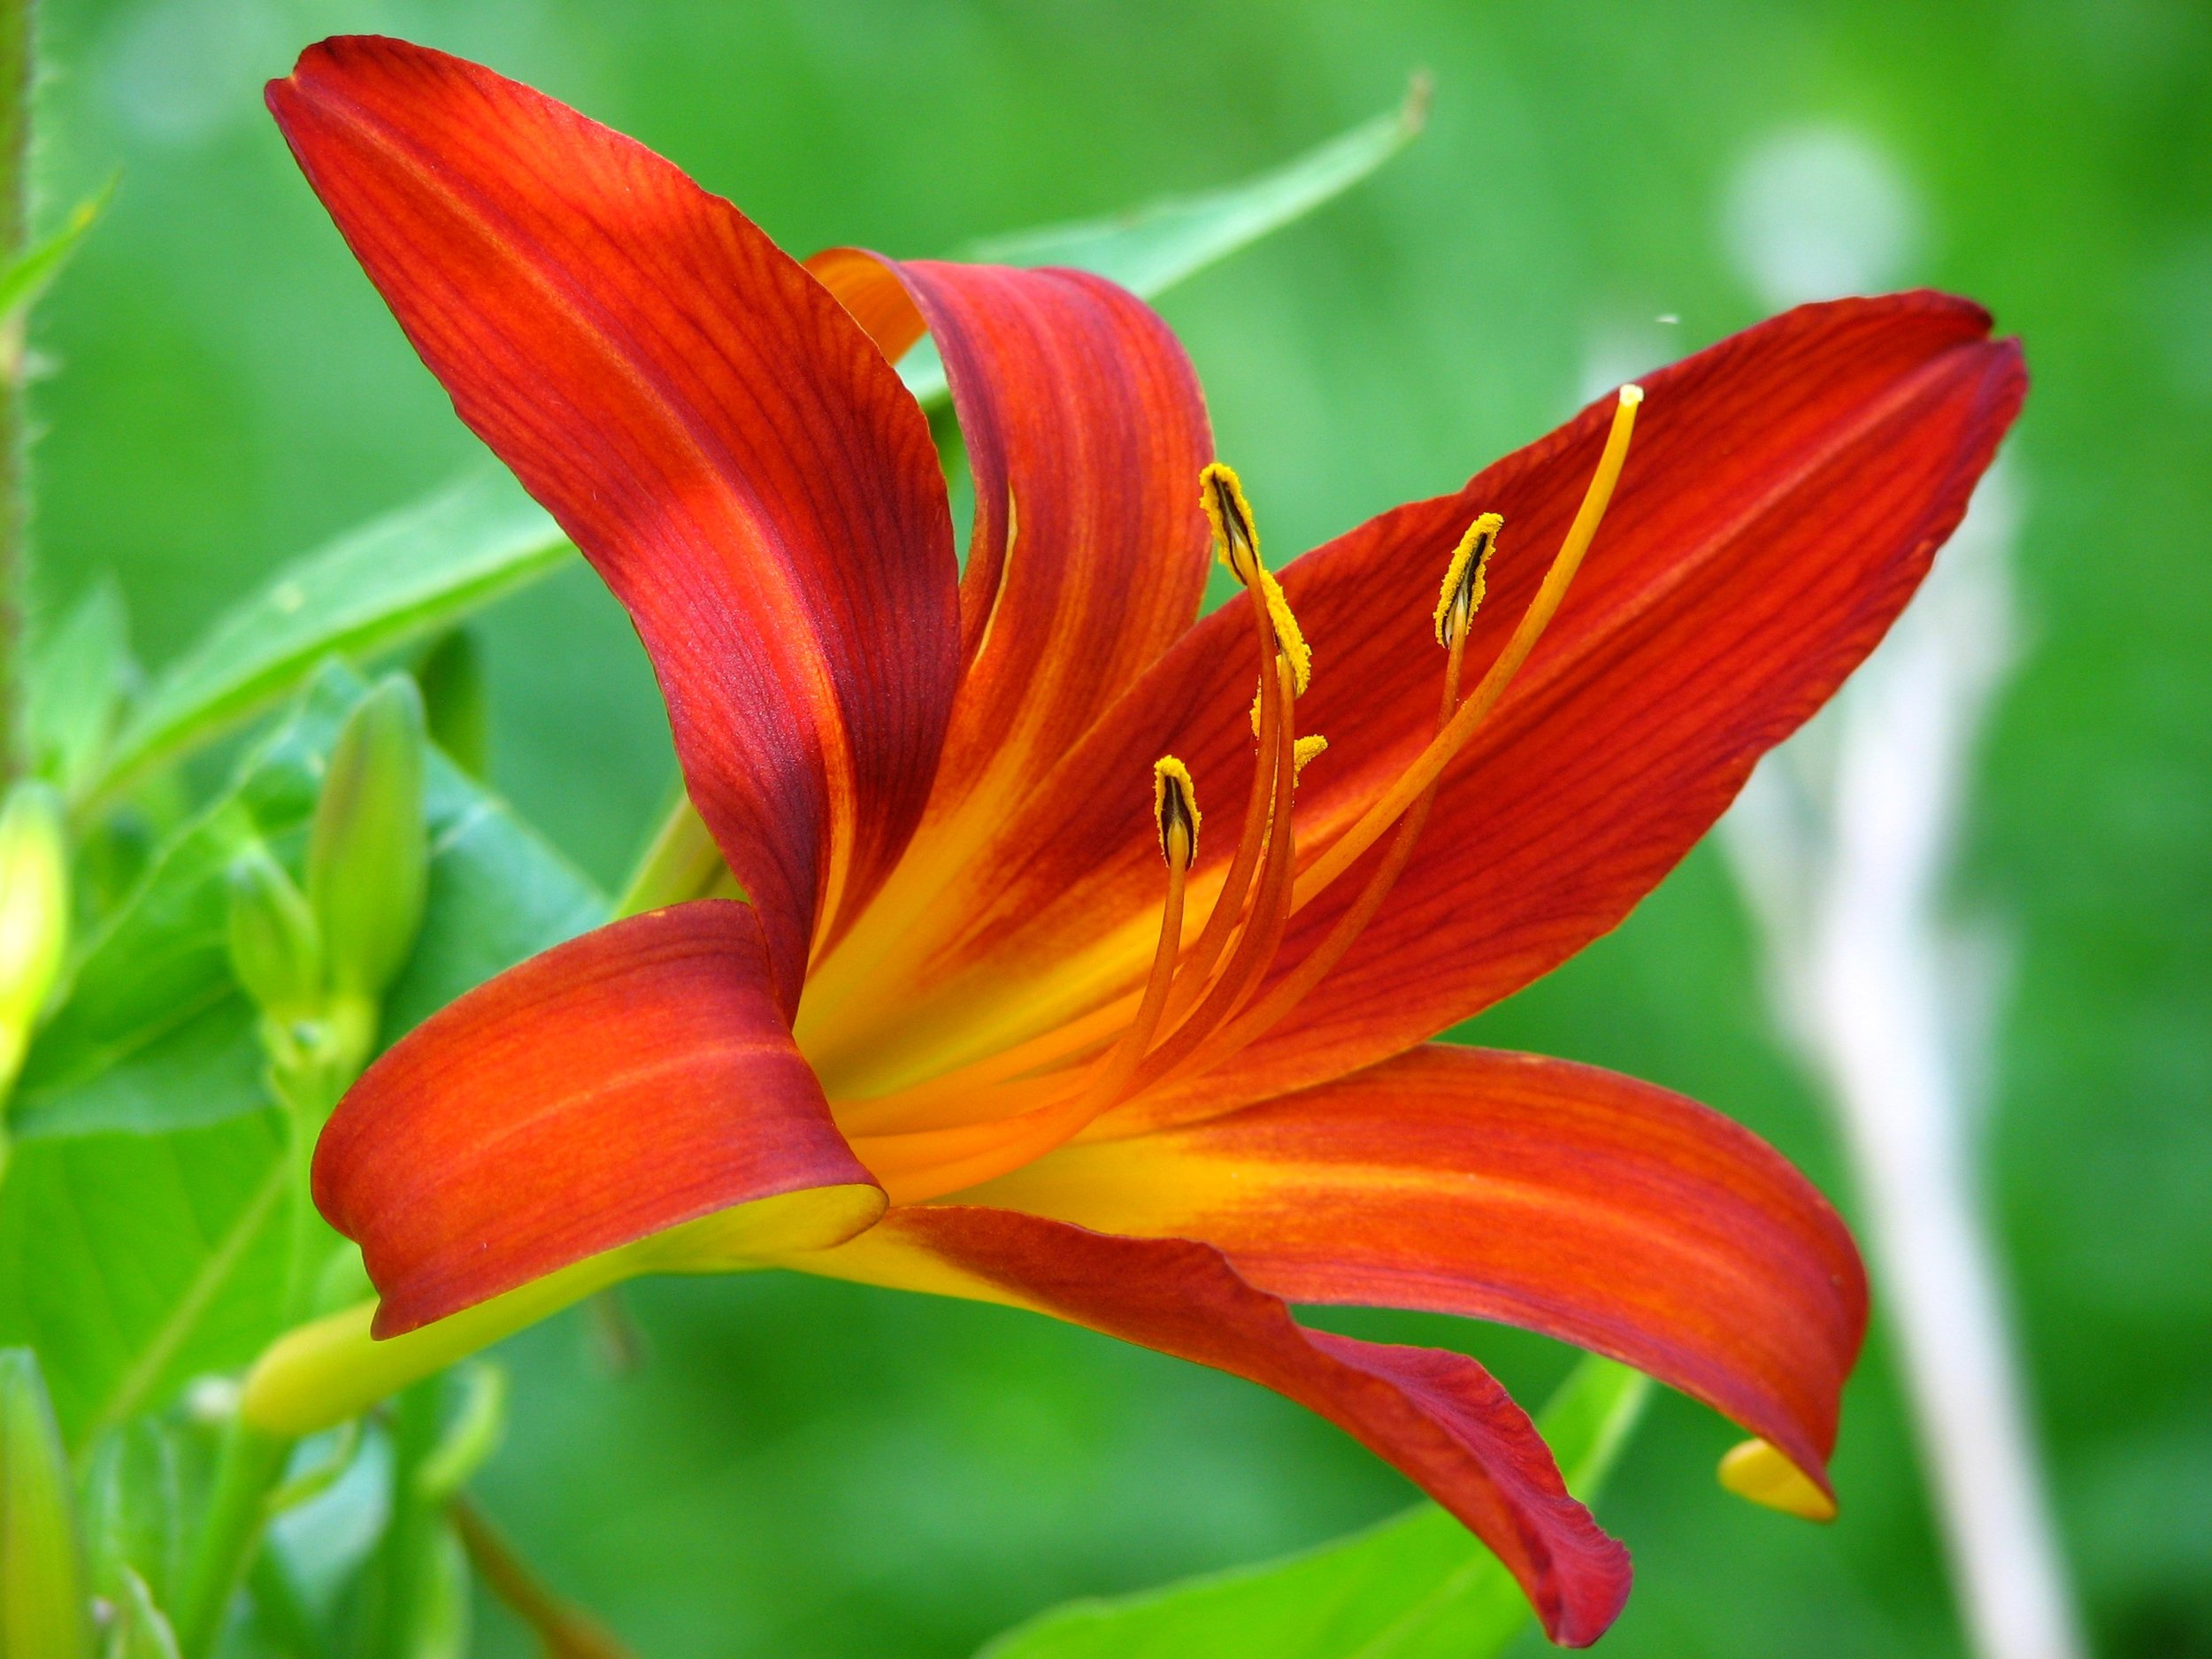 lily-flower-red-blossom-53976.jpg